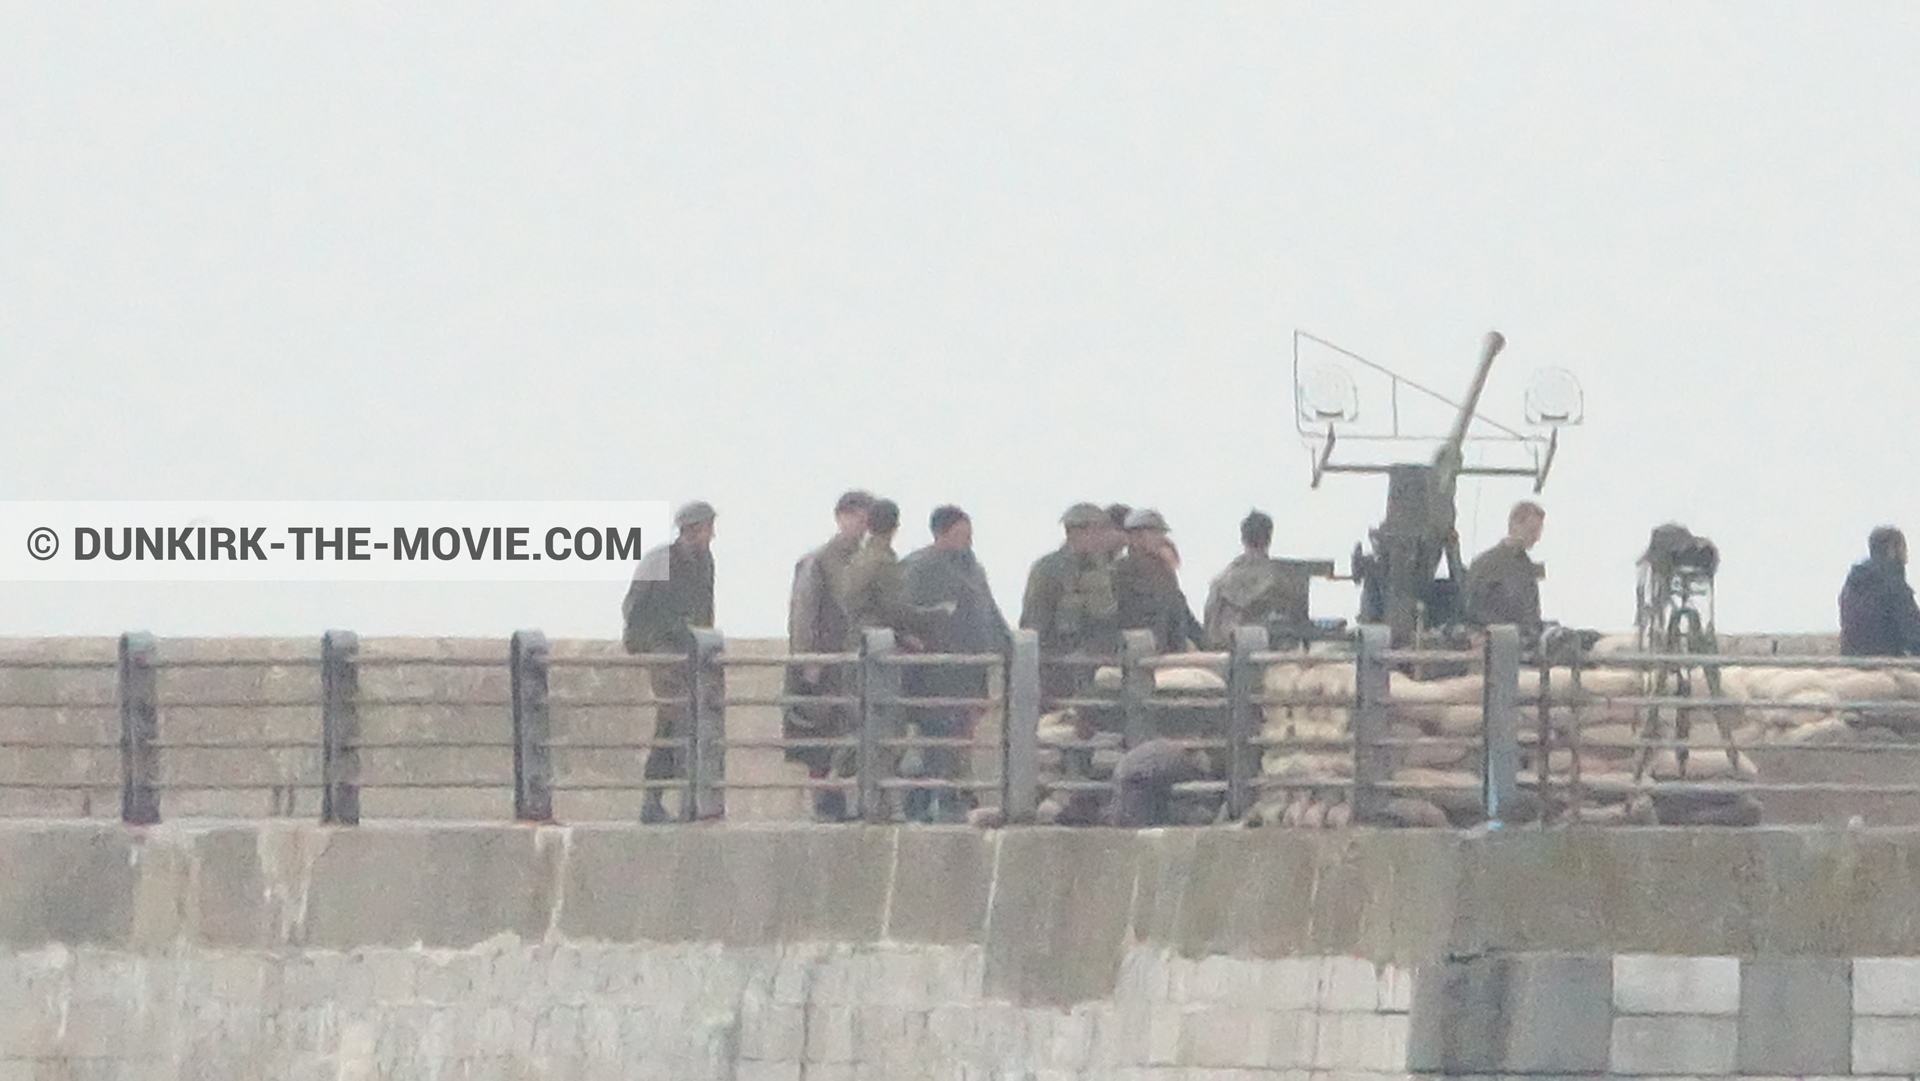 Picture with cannon, grey sky, supernumeraries, EST pier,  from behind the scene of the Dunkirk movie by Nolan